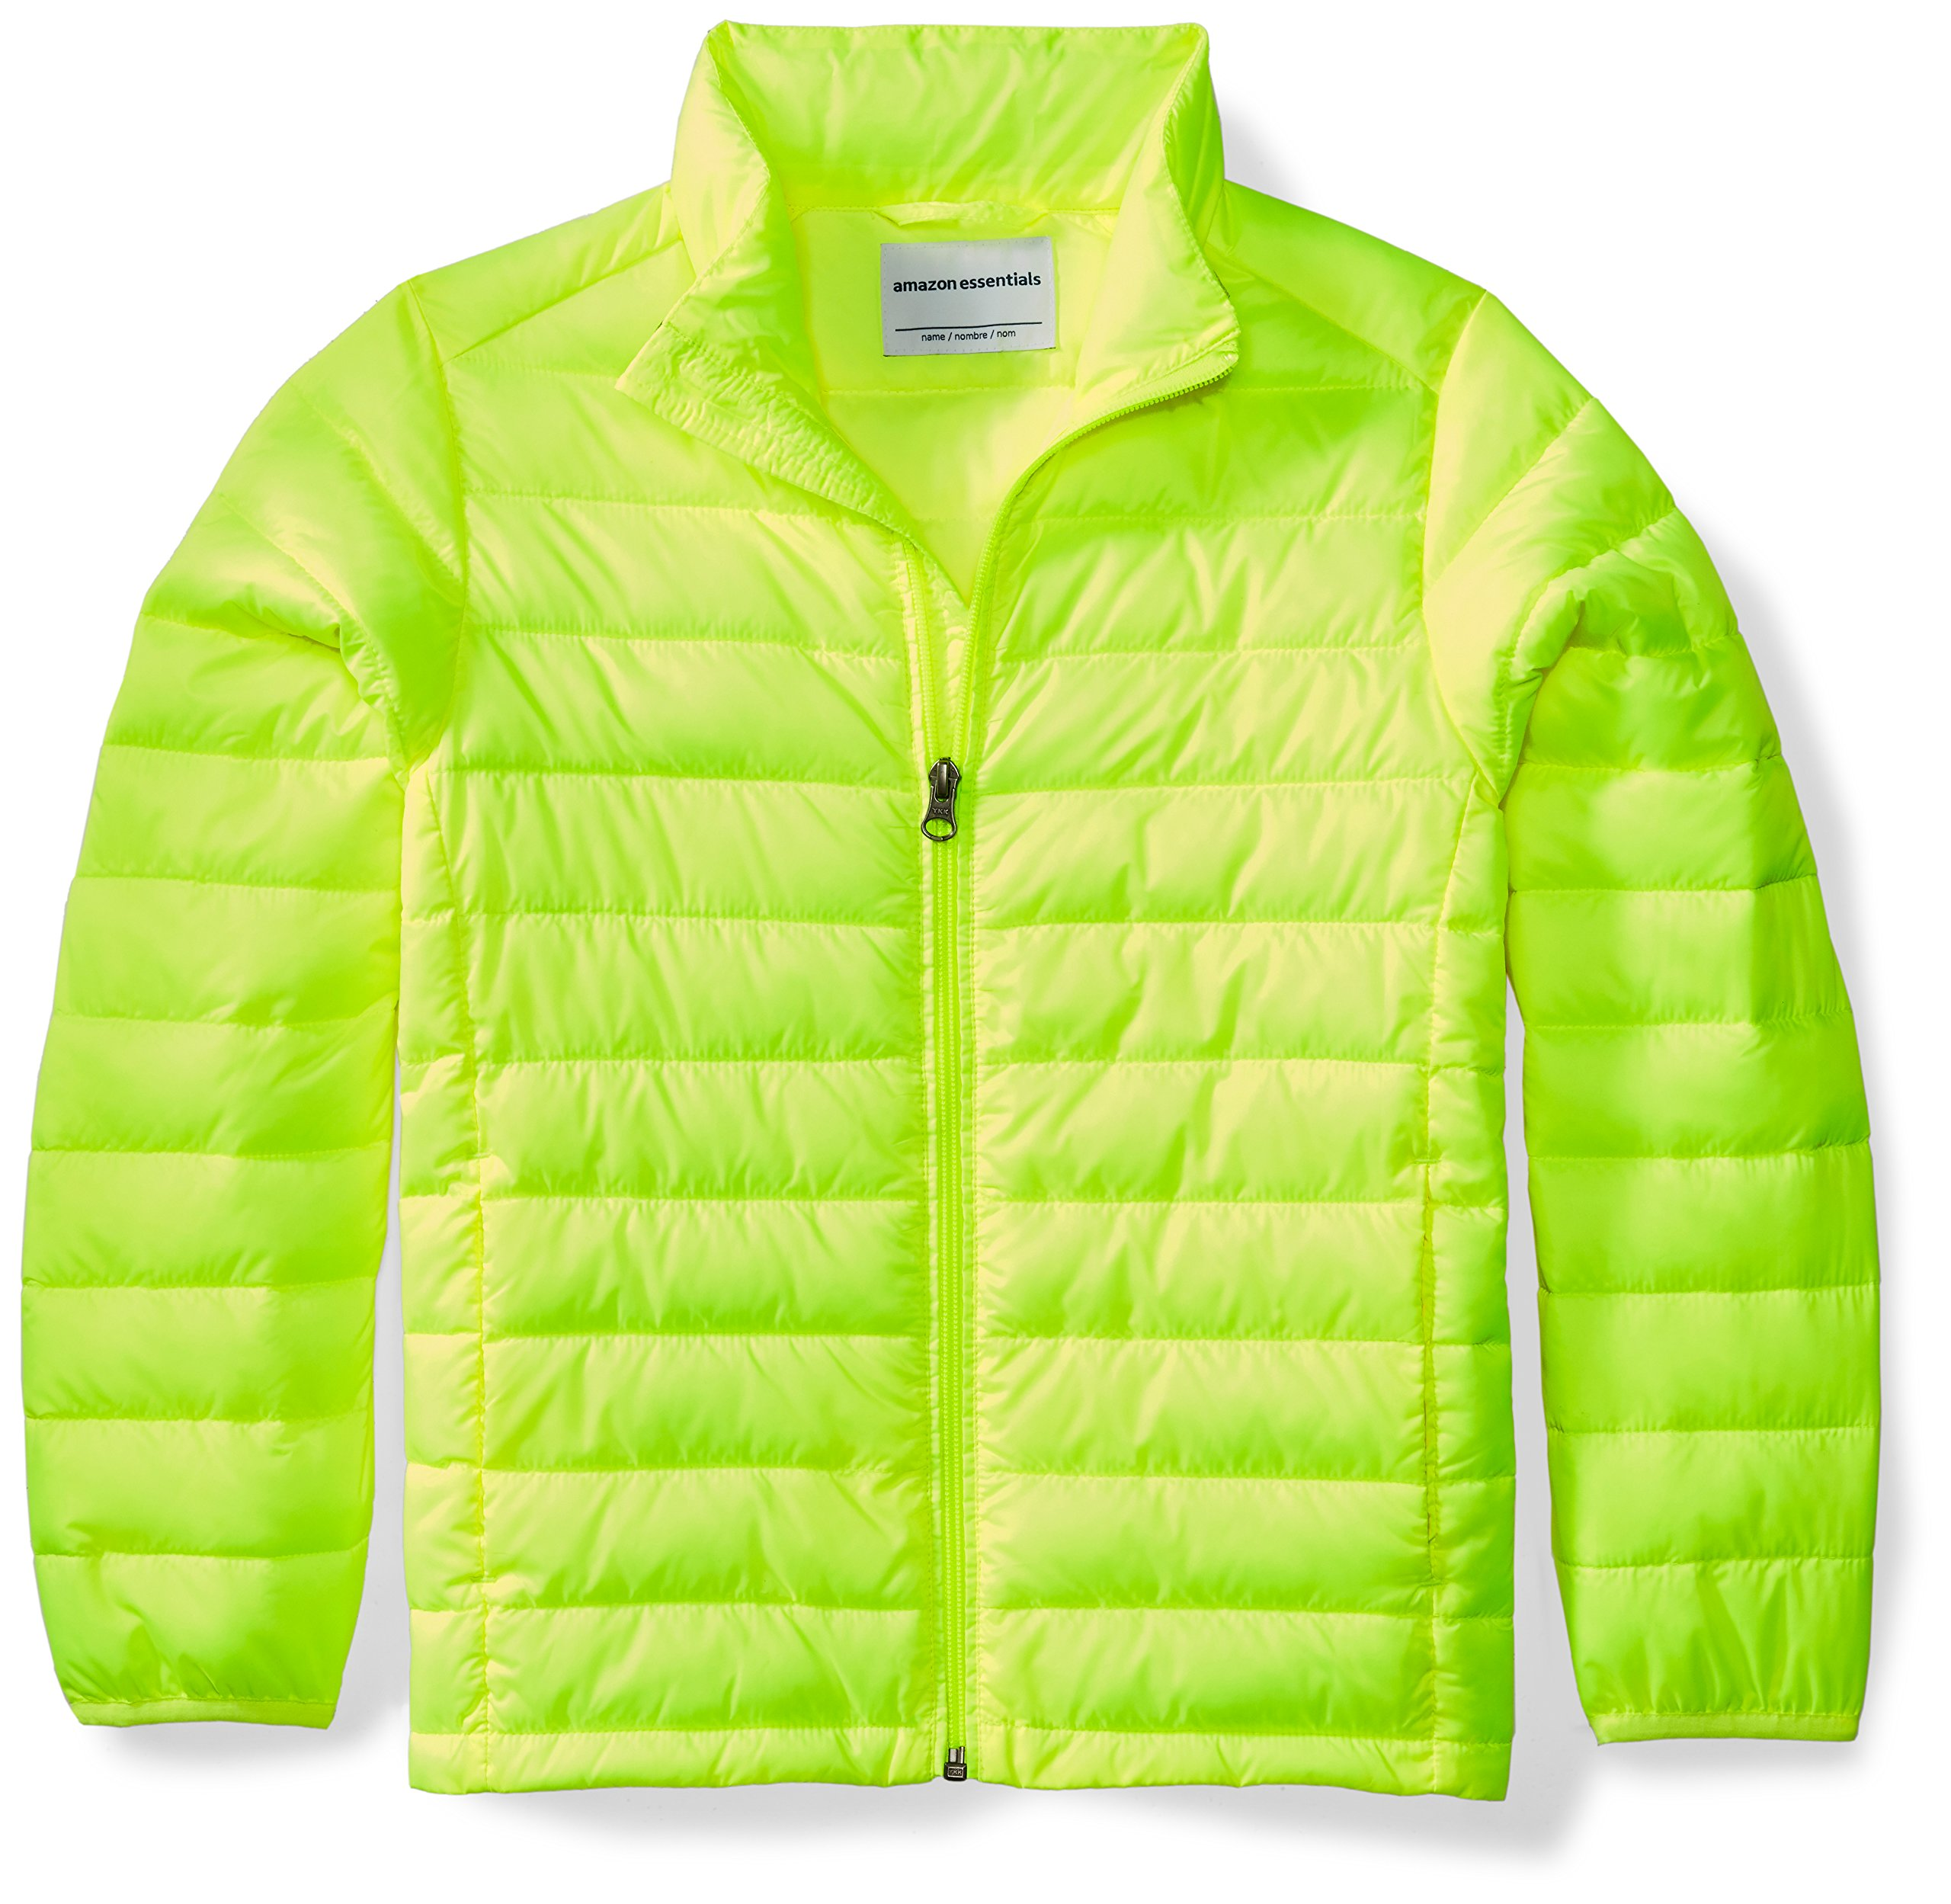 Amazon Essentials Boys' Lightweight Water-Resistant Packable Puffer Jacket, Neon Yellow, X-Large by Amazon Essentials